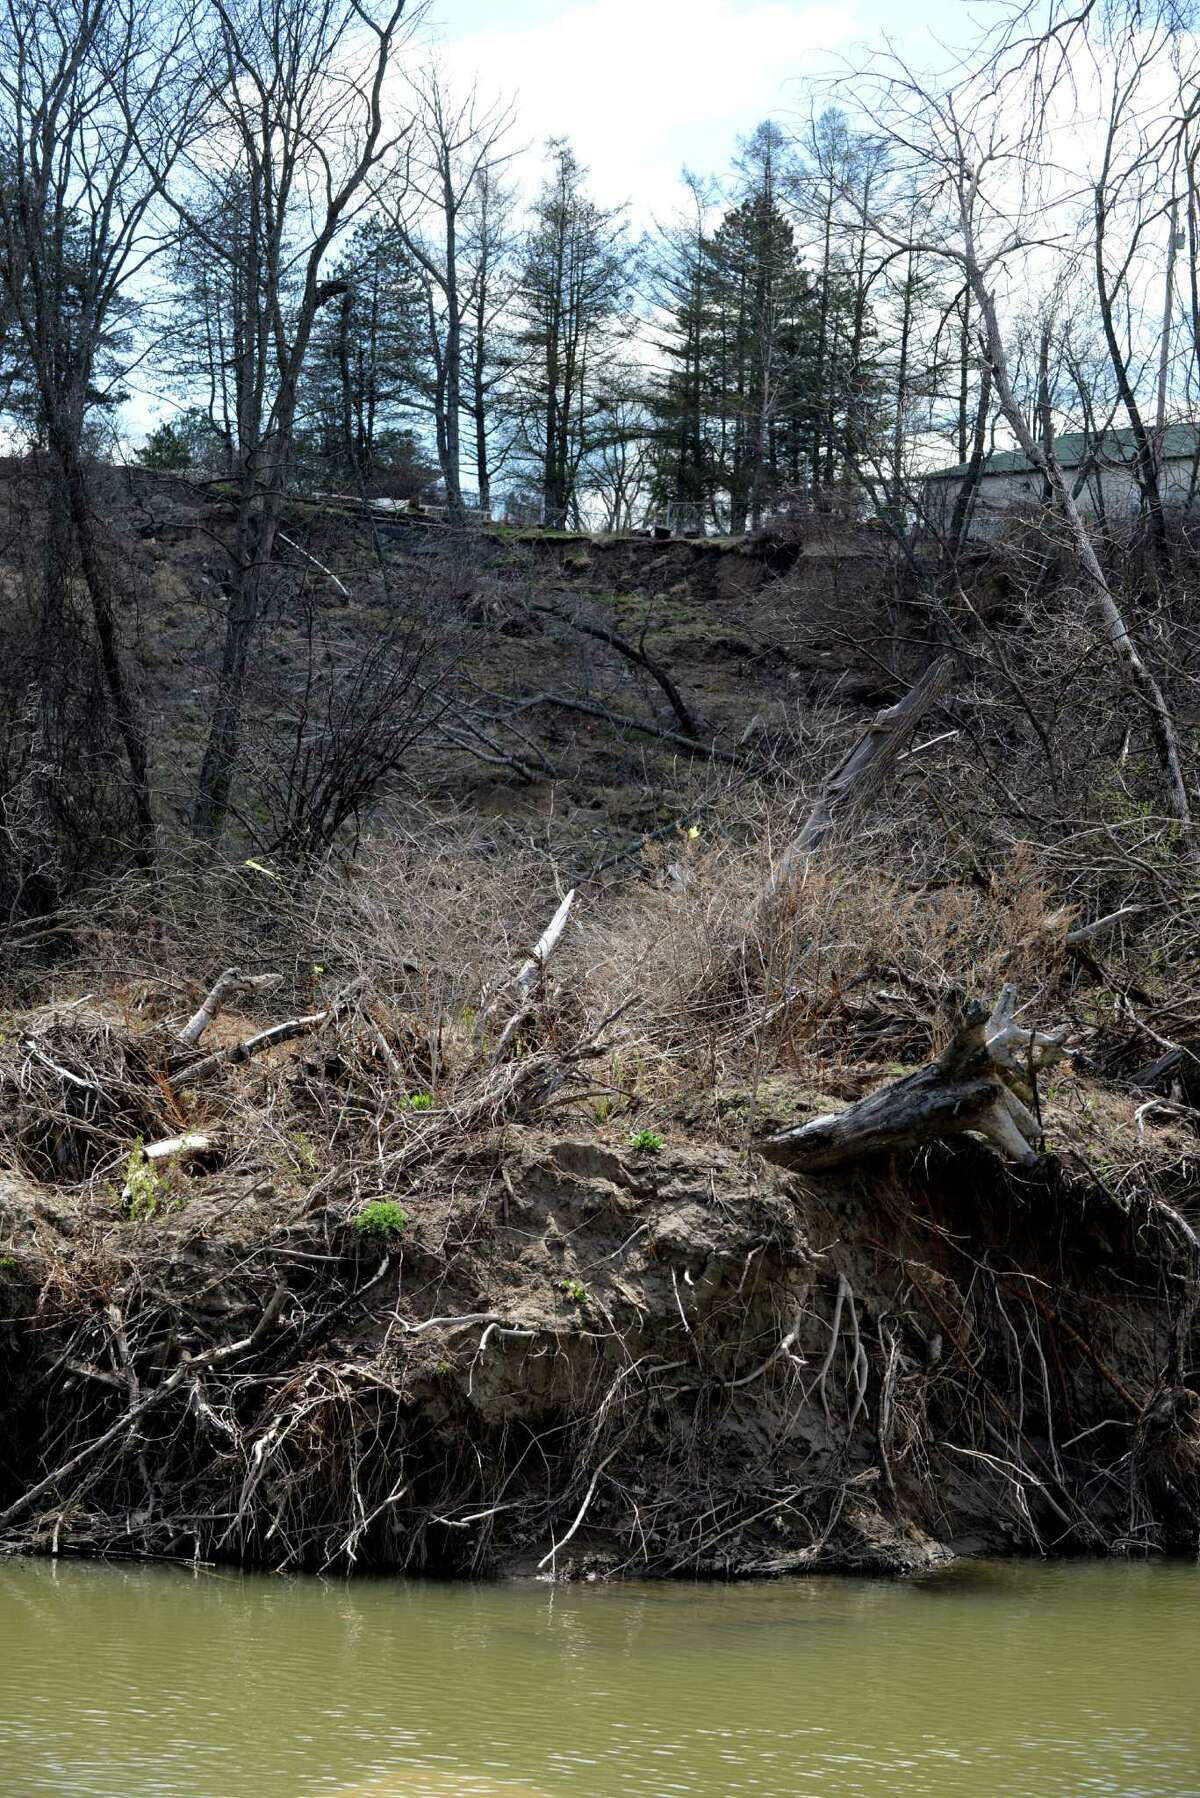 Site of the 2015 landslide at Normanside Country Club on Tuesday, April 19, 2016, in Bethlehem, N.Y. A large portion of earth and debris slid down the hill and blocked the Normans Kill at Capital Hills at Albany Golf Course. (Will Waldron/Times Union)